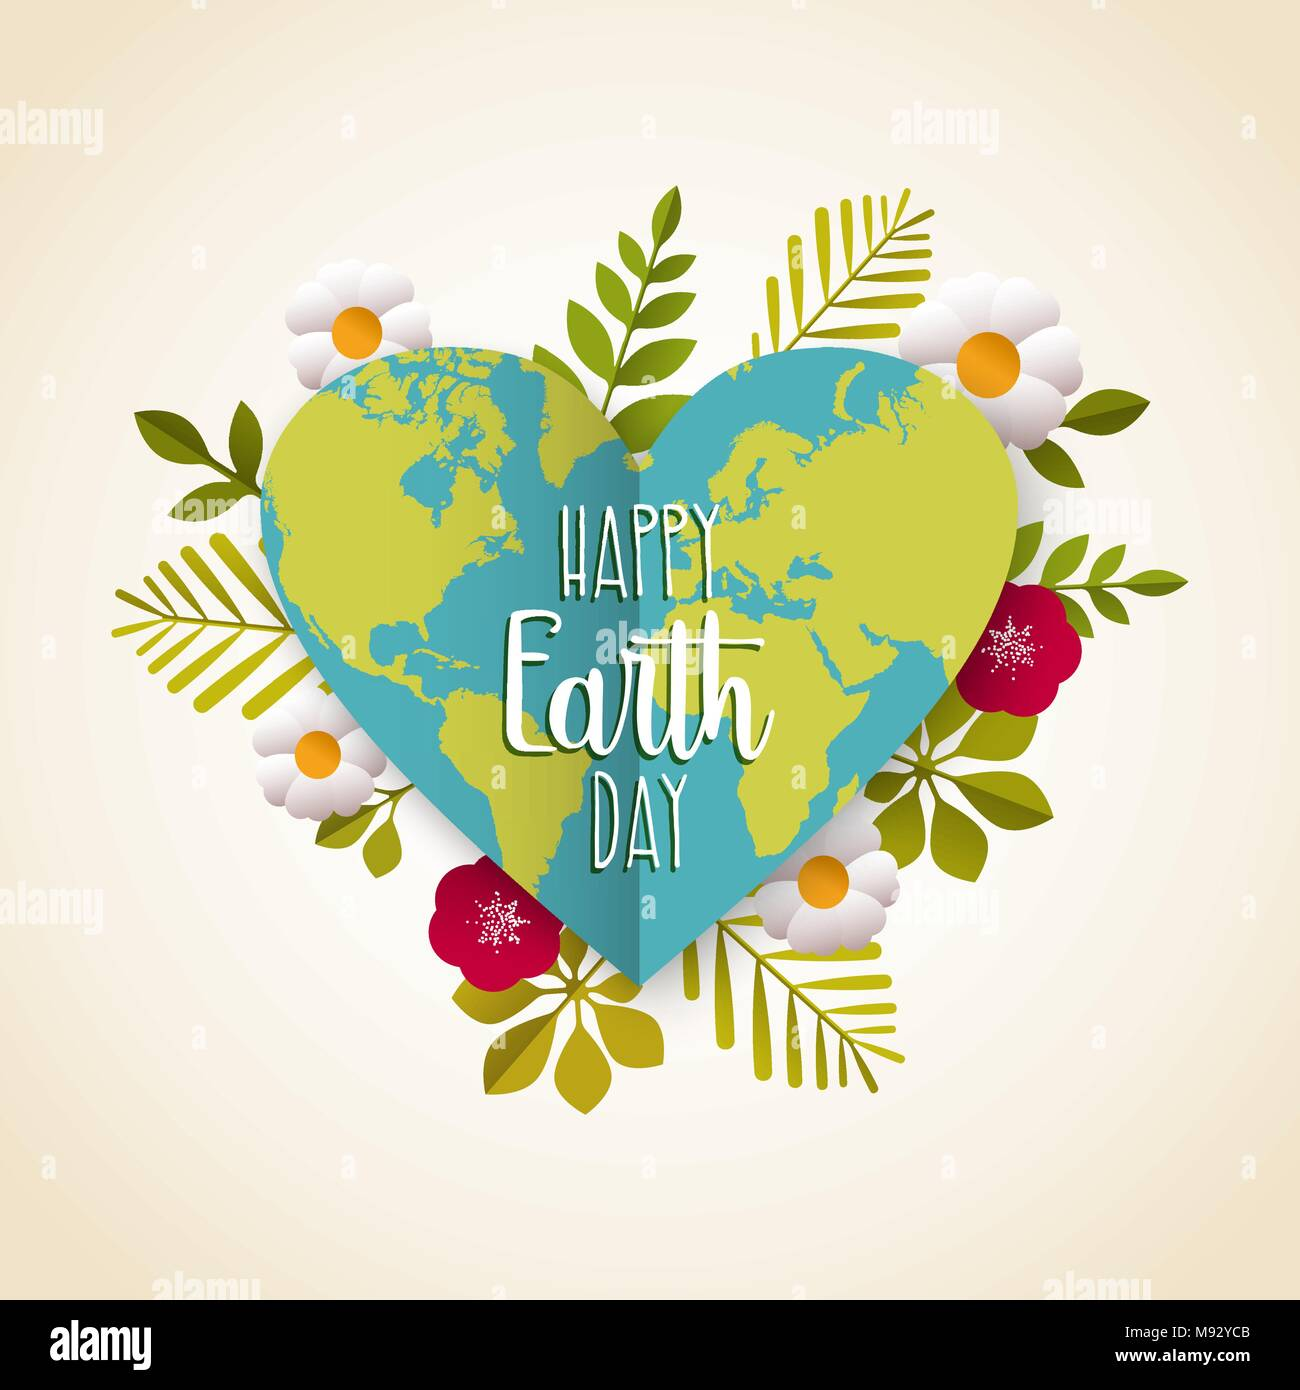 Happy Earth Day Greeting Card Of Green Planet In Heart Shape With